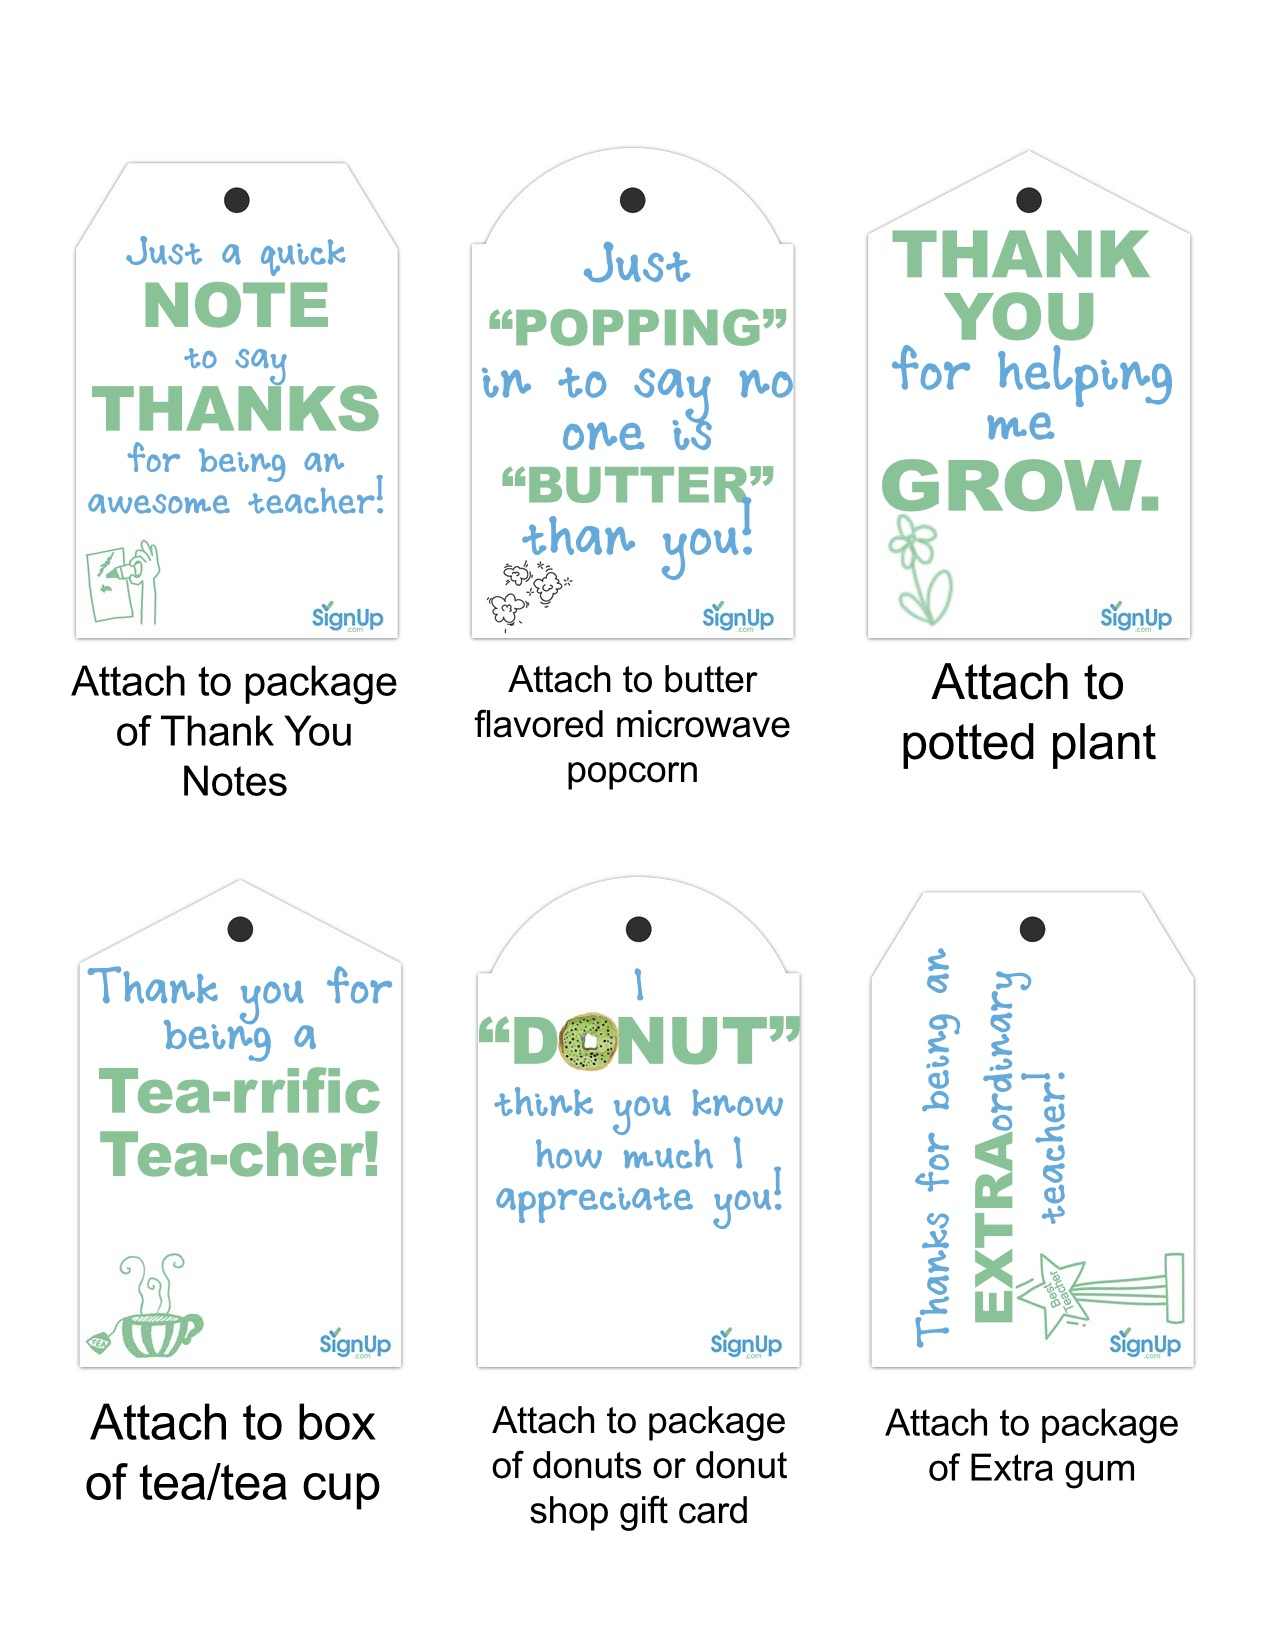 photograph about Extra Gum Teacher Appreciation Printable known as Totally free Instructor Appreciation Printables